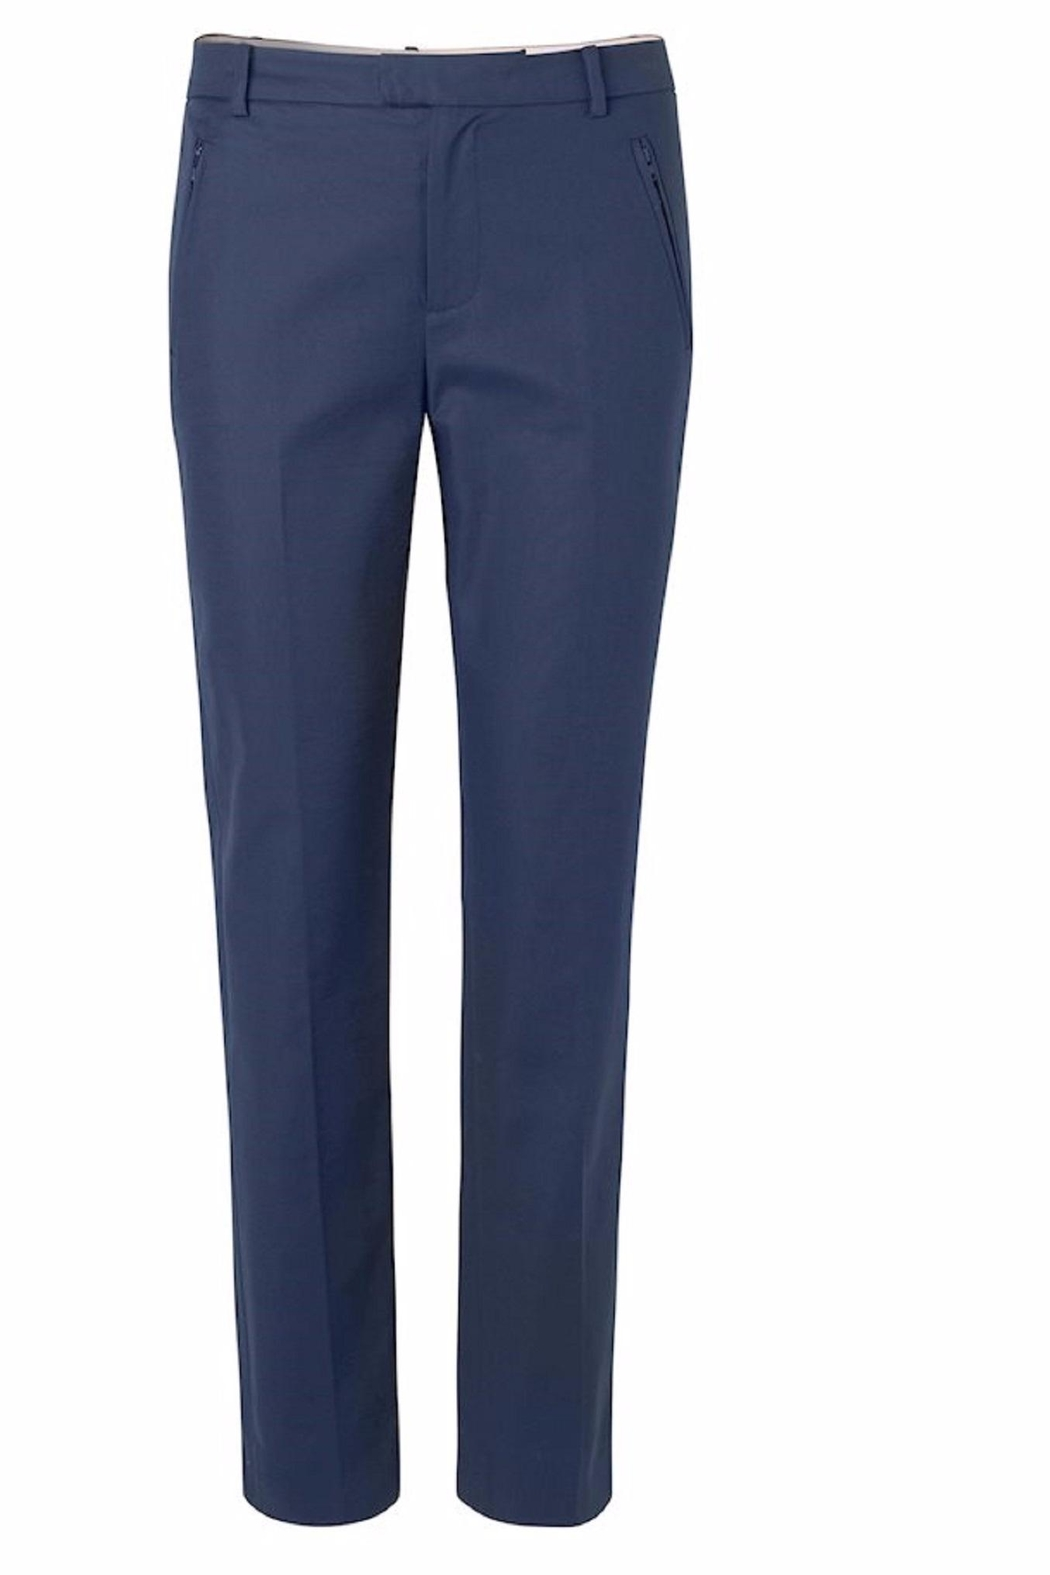 Noa Noa Beautiful Basic Trousers - Front Cropped Image